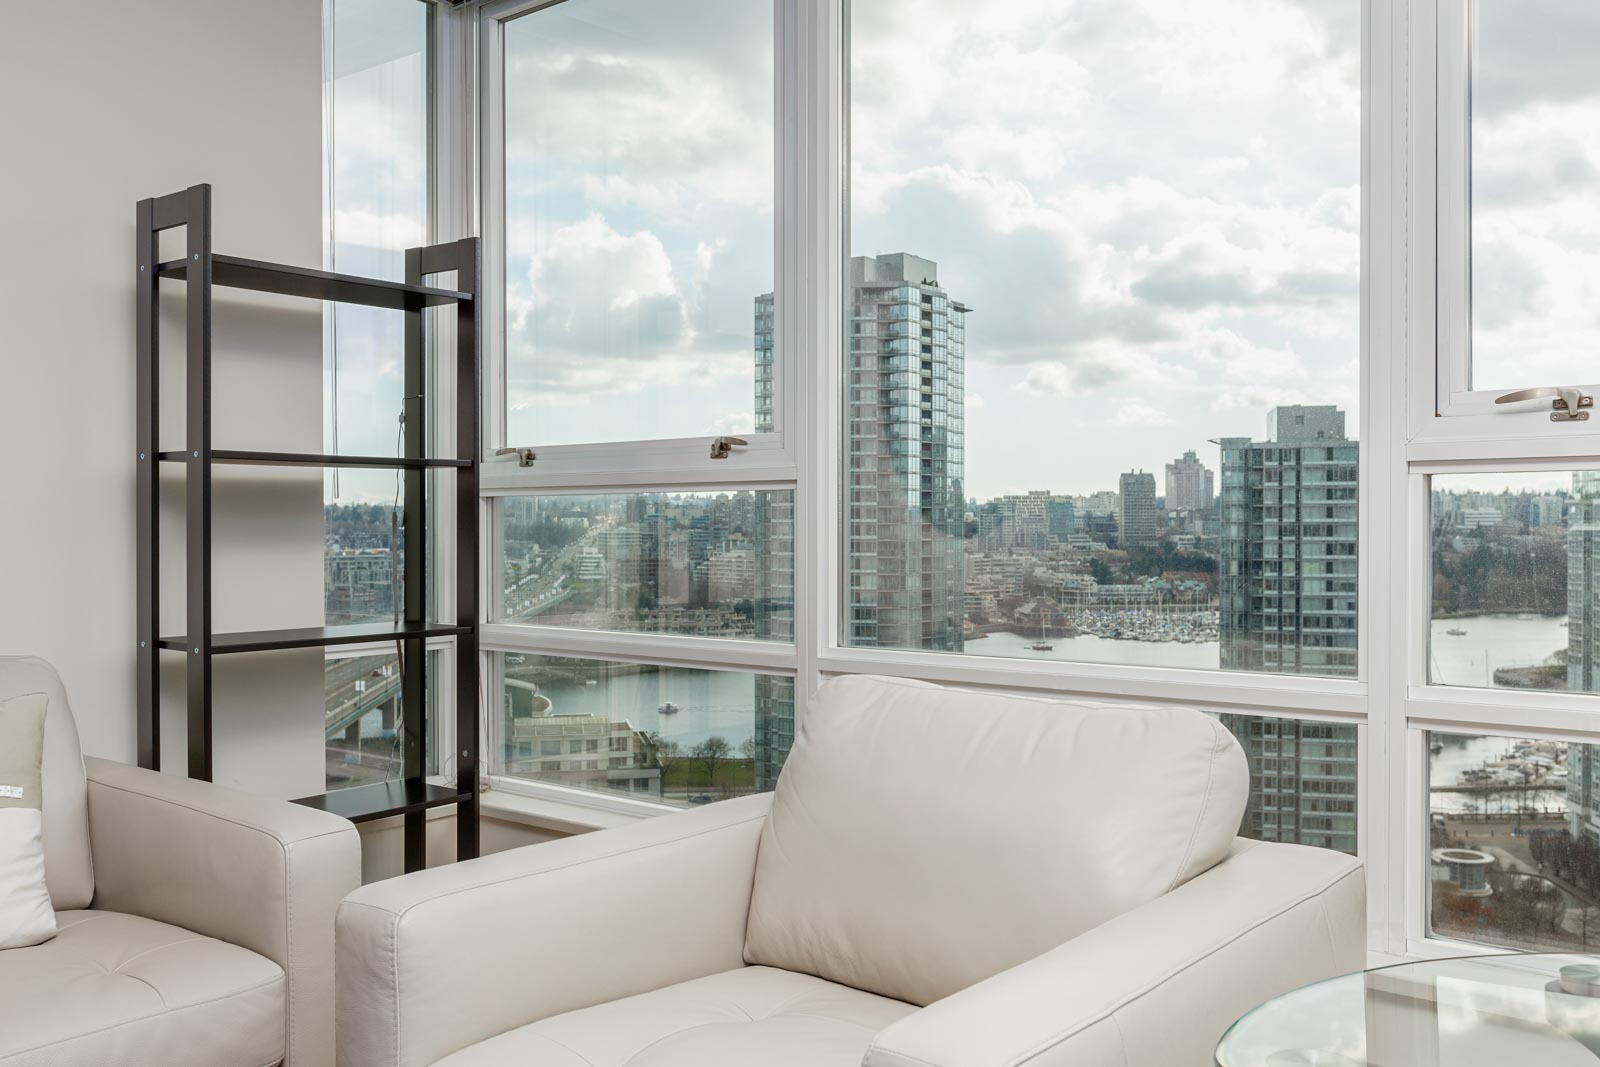 View from living room of Downtown Vancouver rental condo.